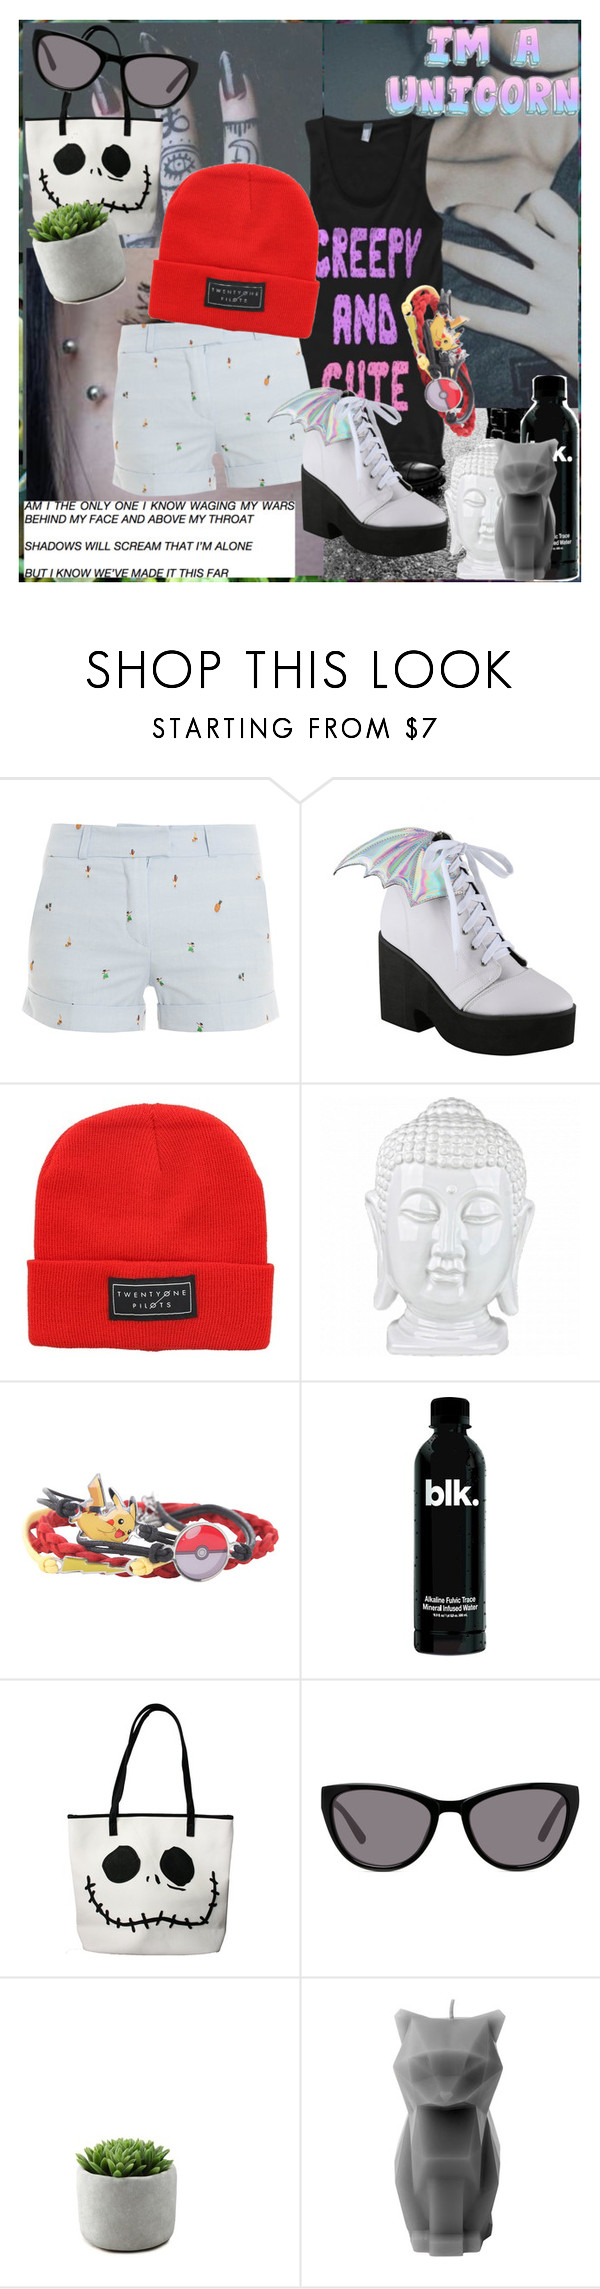 """trash Mammal"" by frerardforever ❤ liked on Polyvore featuring Zephyr, Paul & Joe, Iron Fist, Nintendo, Loungefly and PyroPet"